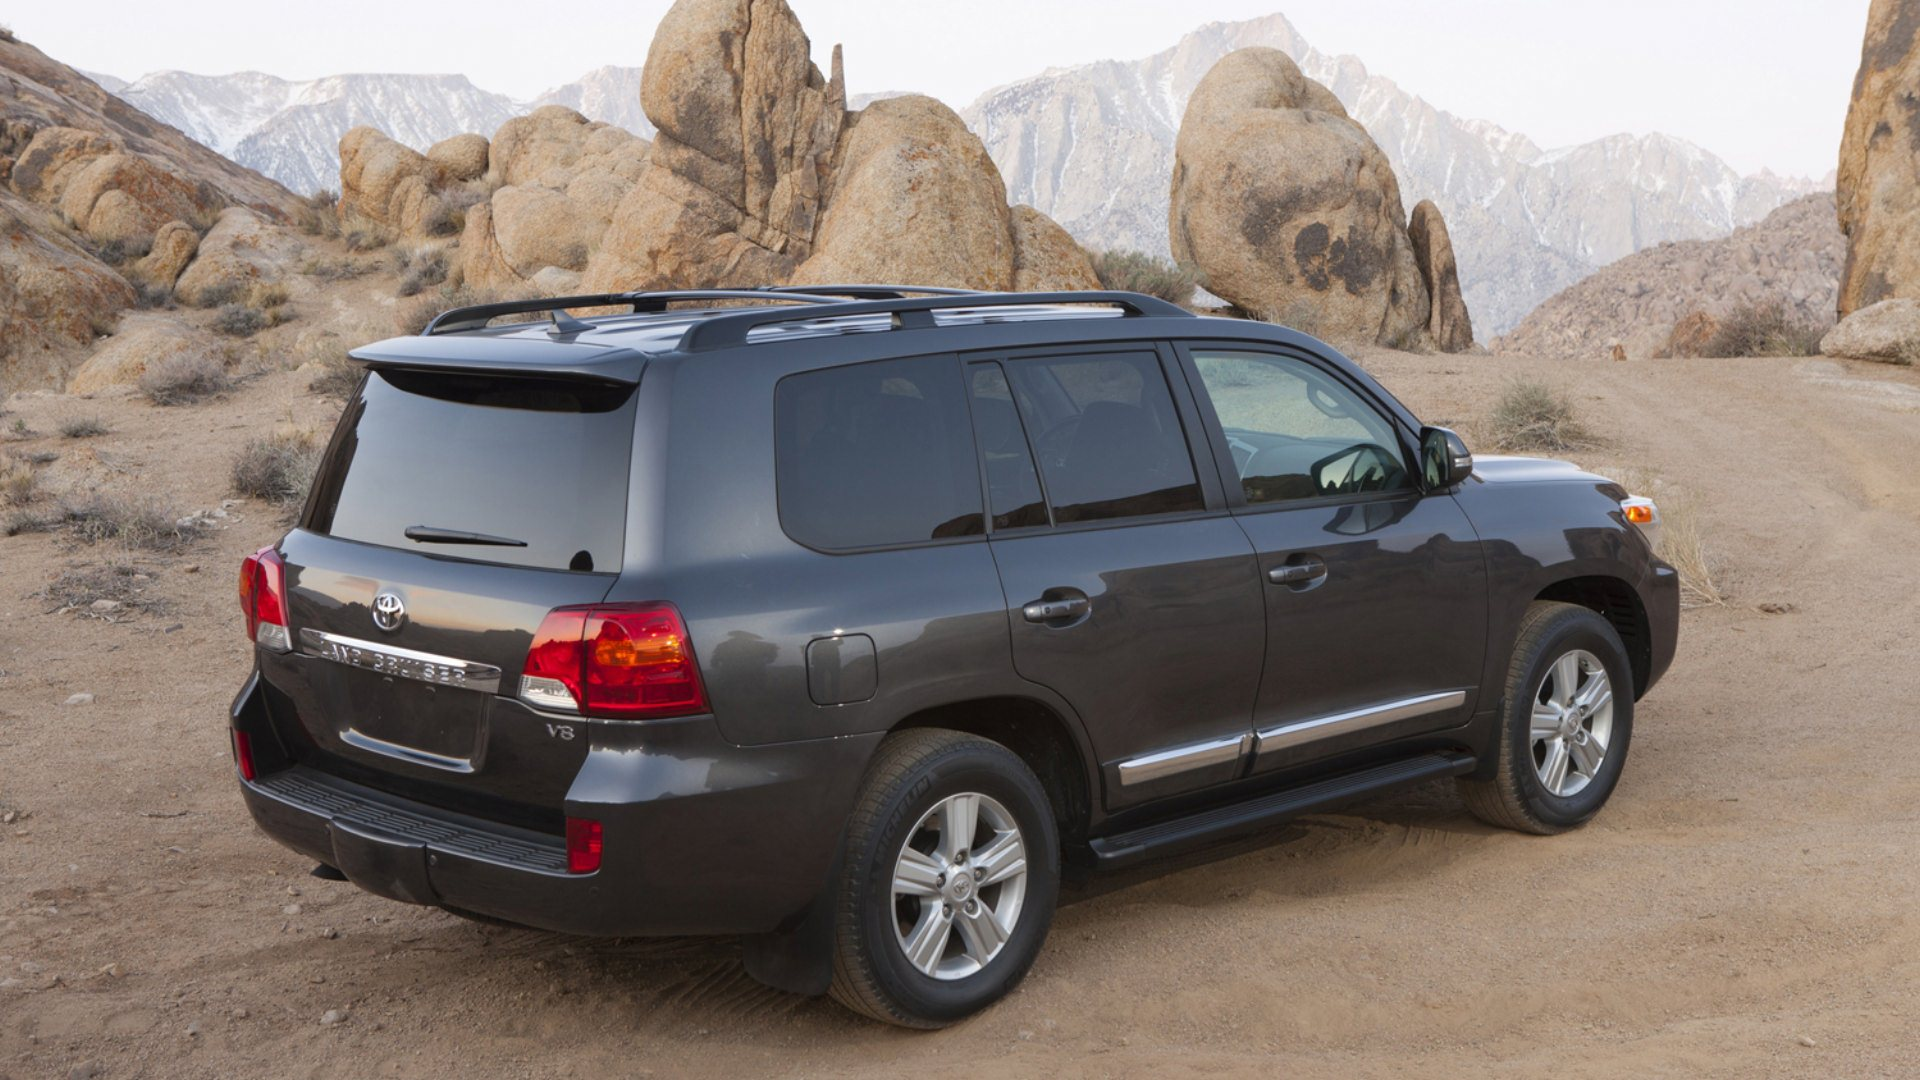 2013 Toyota Land Cruiser HD Wallpapers